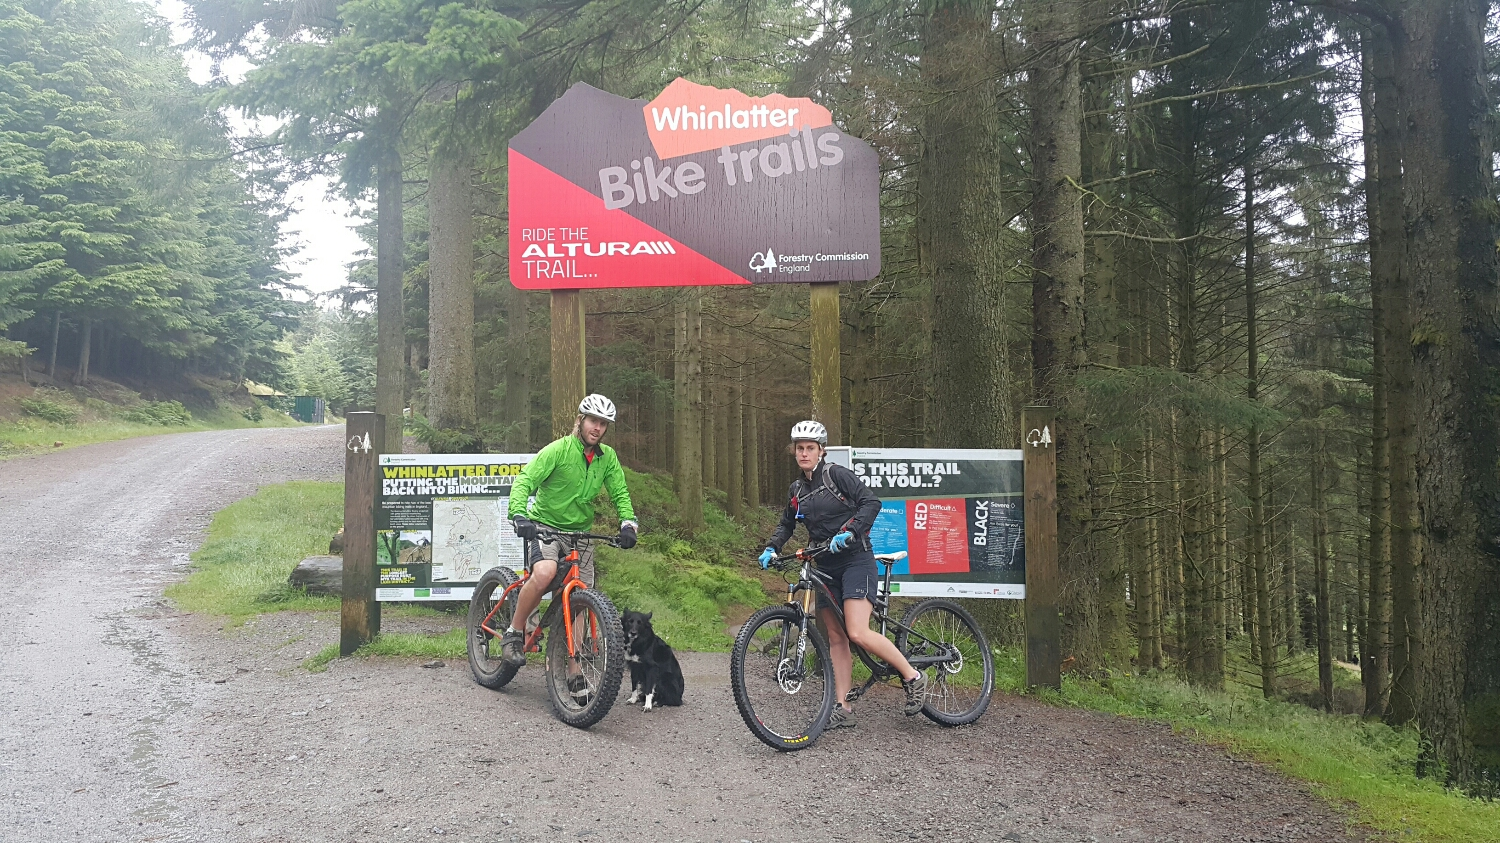 Pete and his friend Christina and Keela the dog about to start a lap of the trail park in Whinlatter.